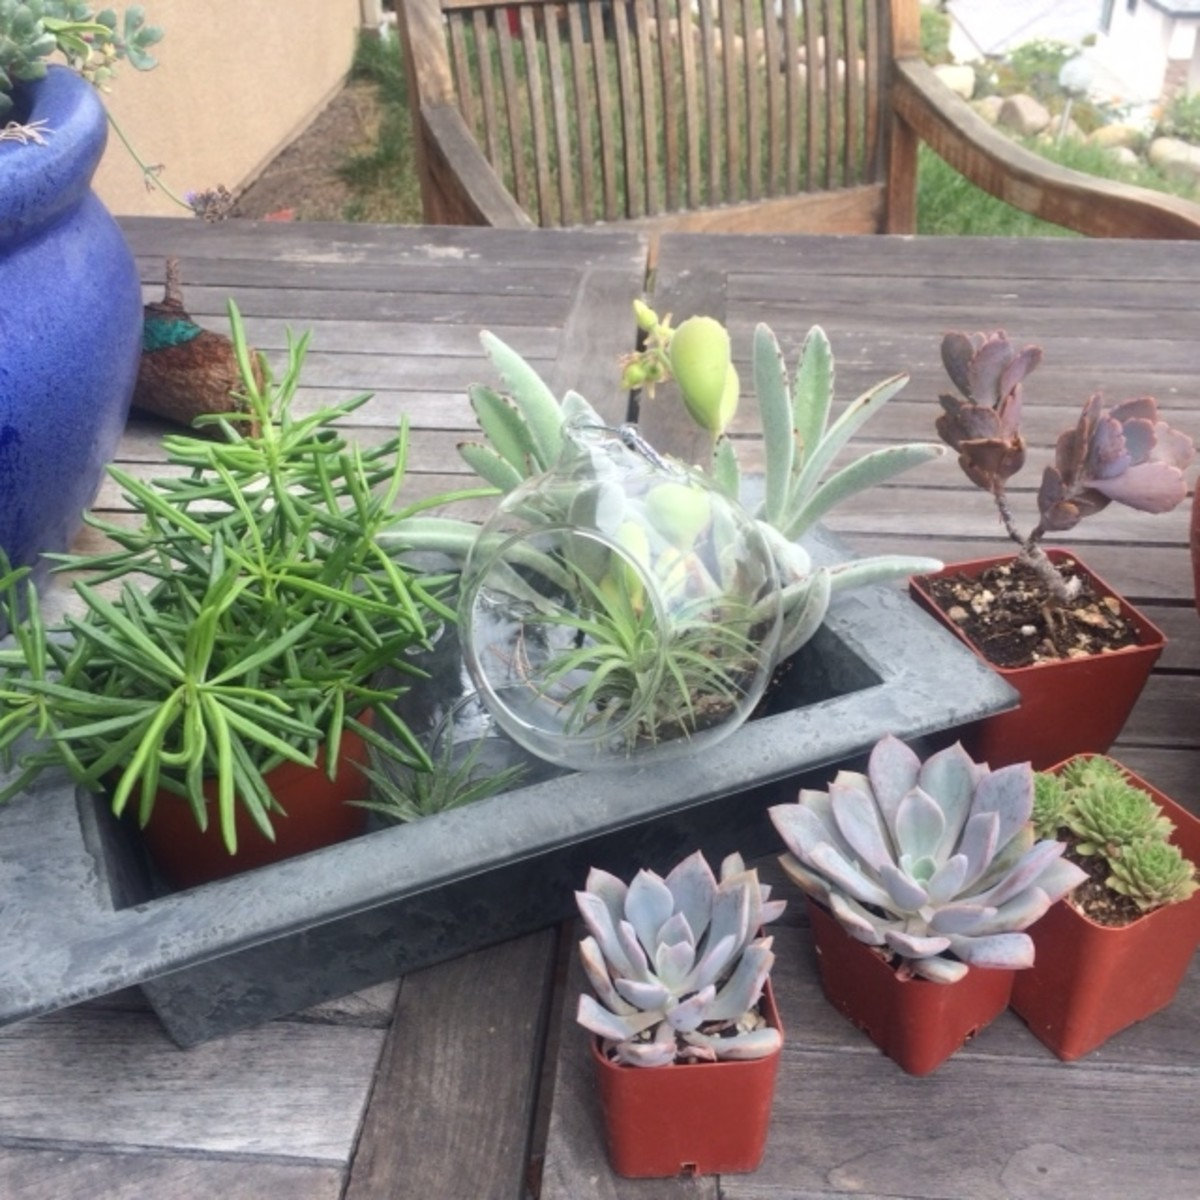 Any assortment of succulents. You can buy them from nurseries, farmers markets or steal a couple from your friend's backyard.